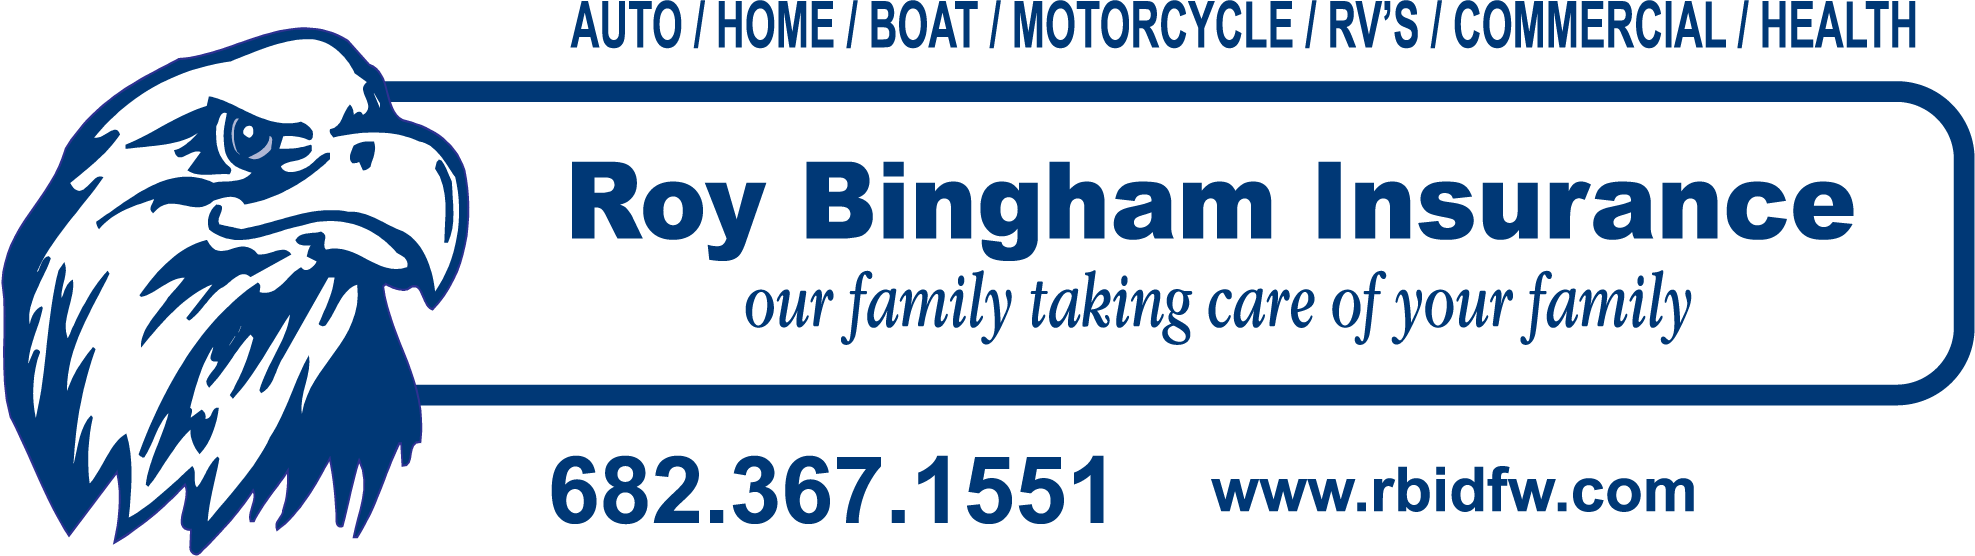 Compare Texas Home Auto Insurance Quotes Online Roy Bingham Insurance